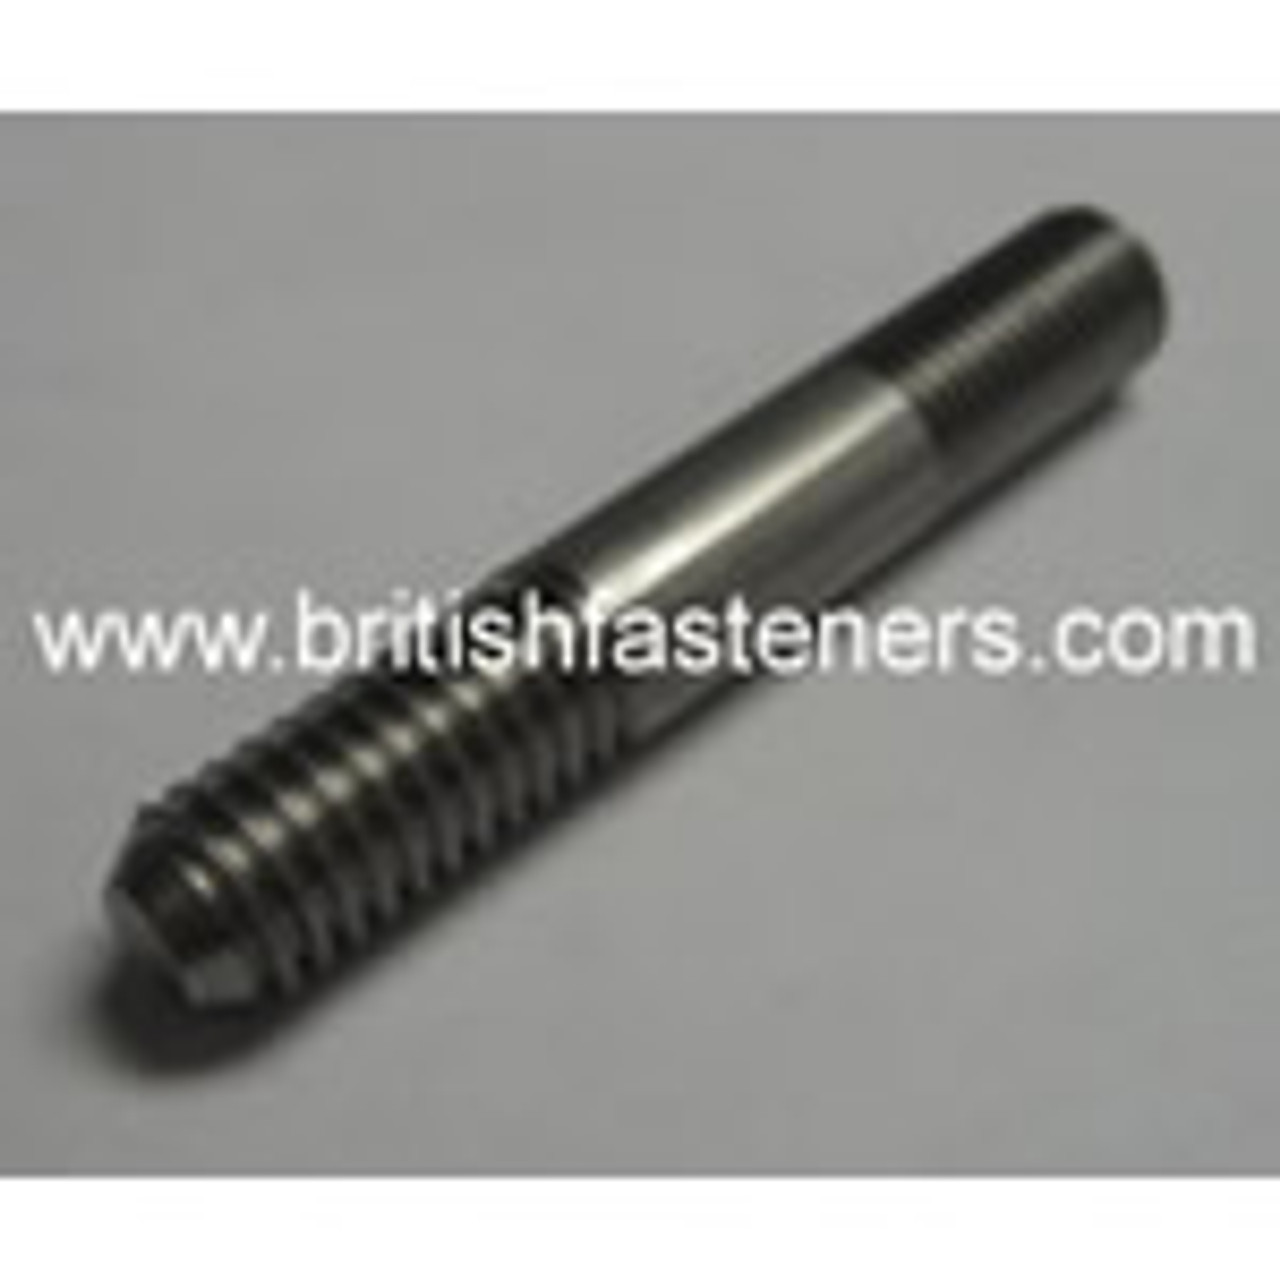 "UNF 5/16"" x 11.5"" LONG STUD - 24 TPI"